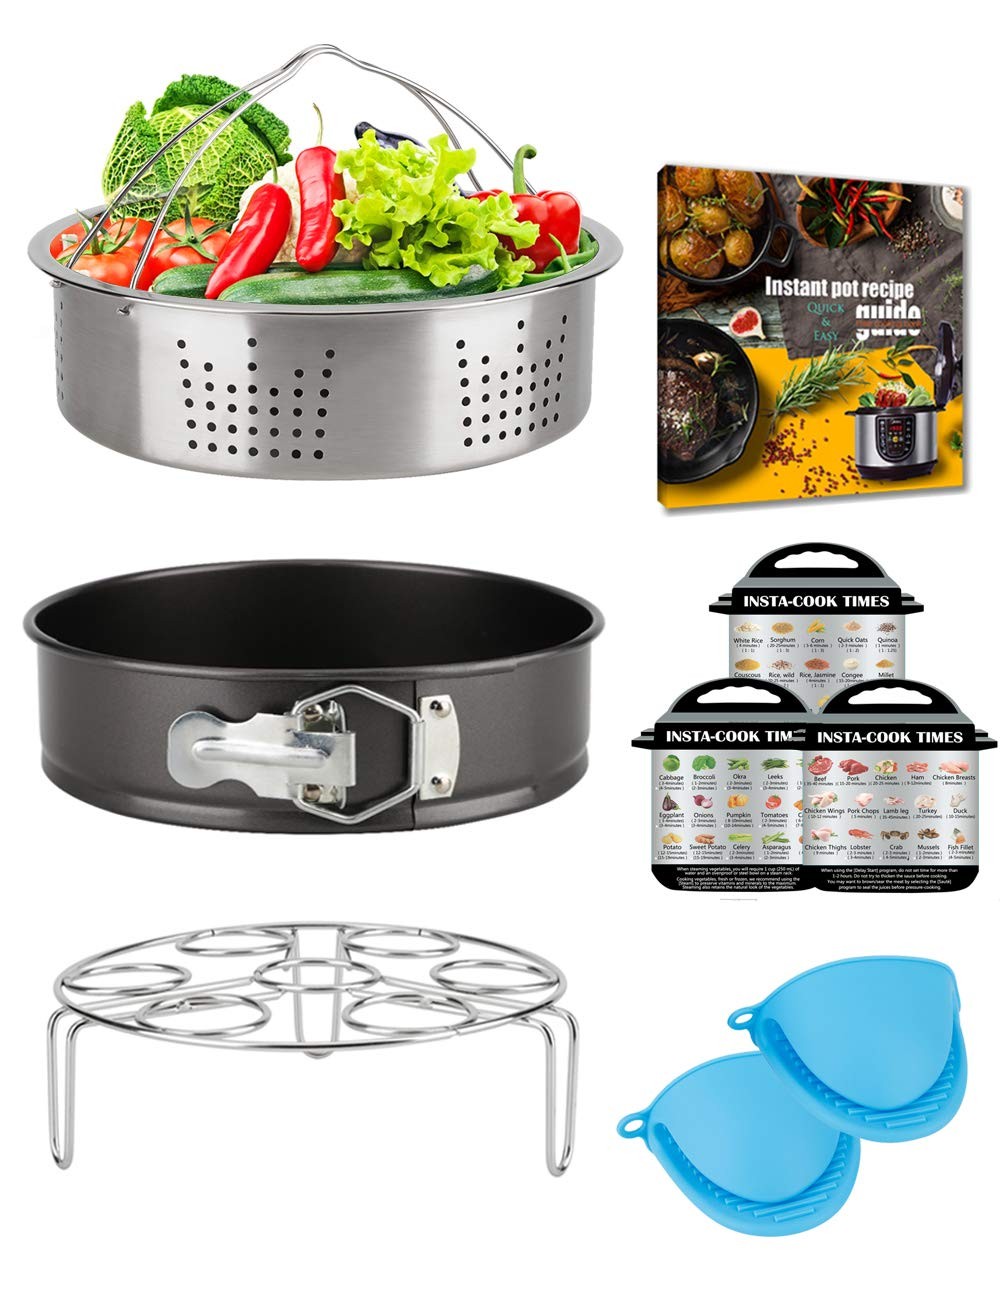 Pressure Cooker Accessories 6 Quart 8 Qt for Instant Pot, Steamer Basket Springform Pan Egg Trivet Silicone Mitts Cookbook Magnets Receipt, SS304 Stainless, Compatible with Instapot Duo 6 Qt 8 Quart